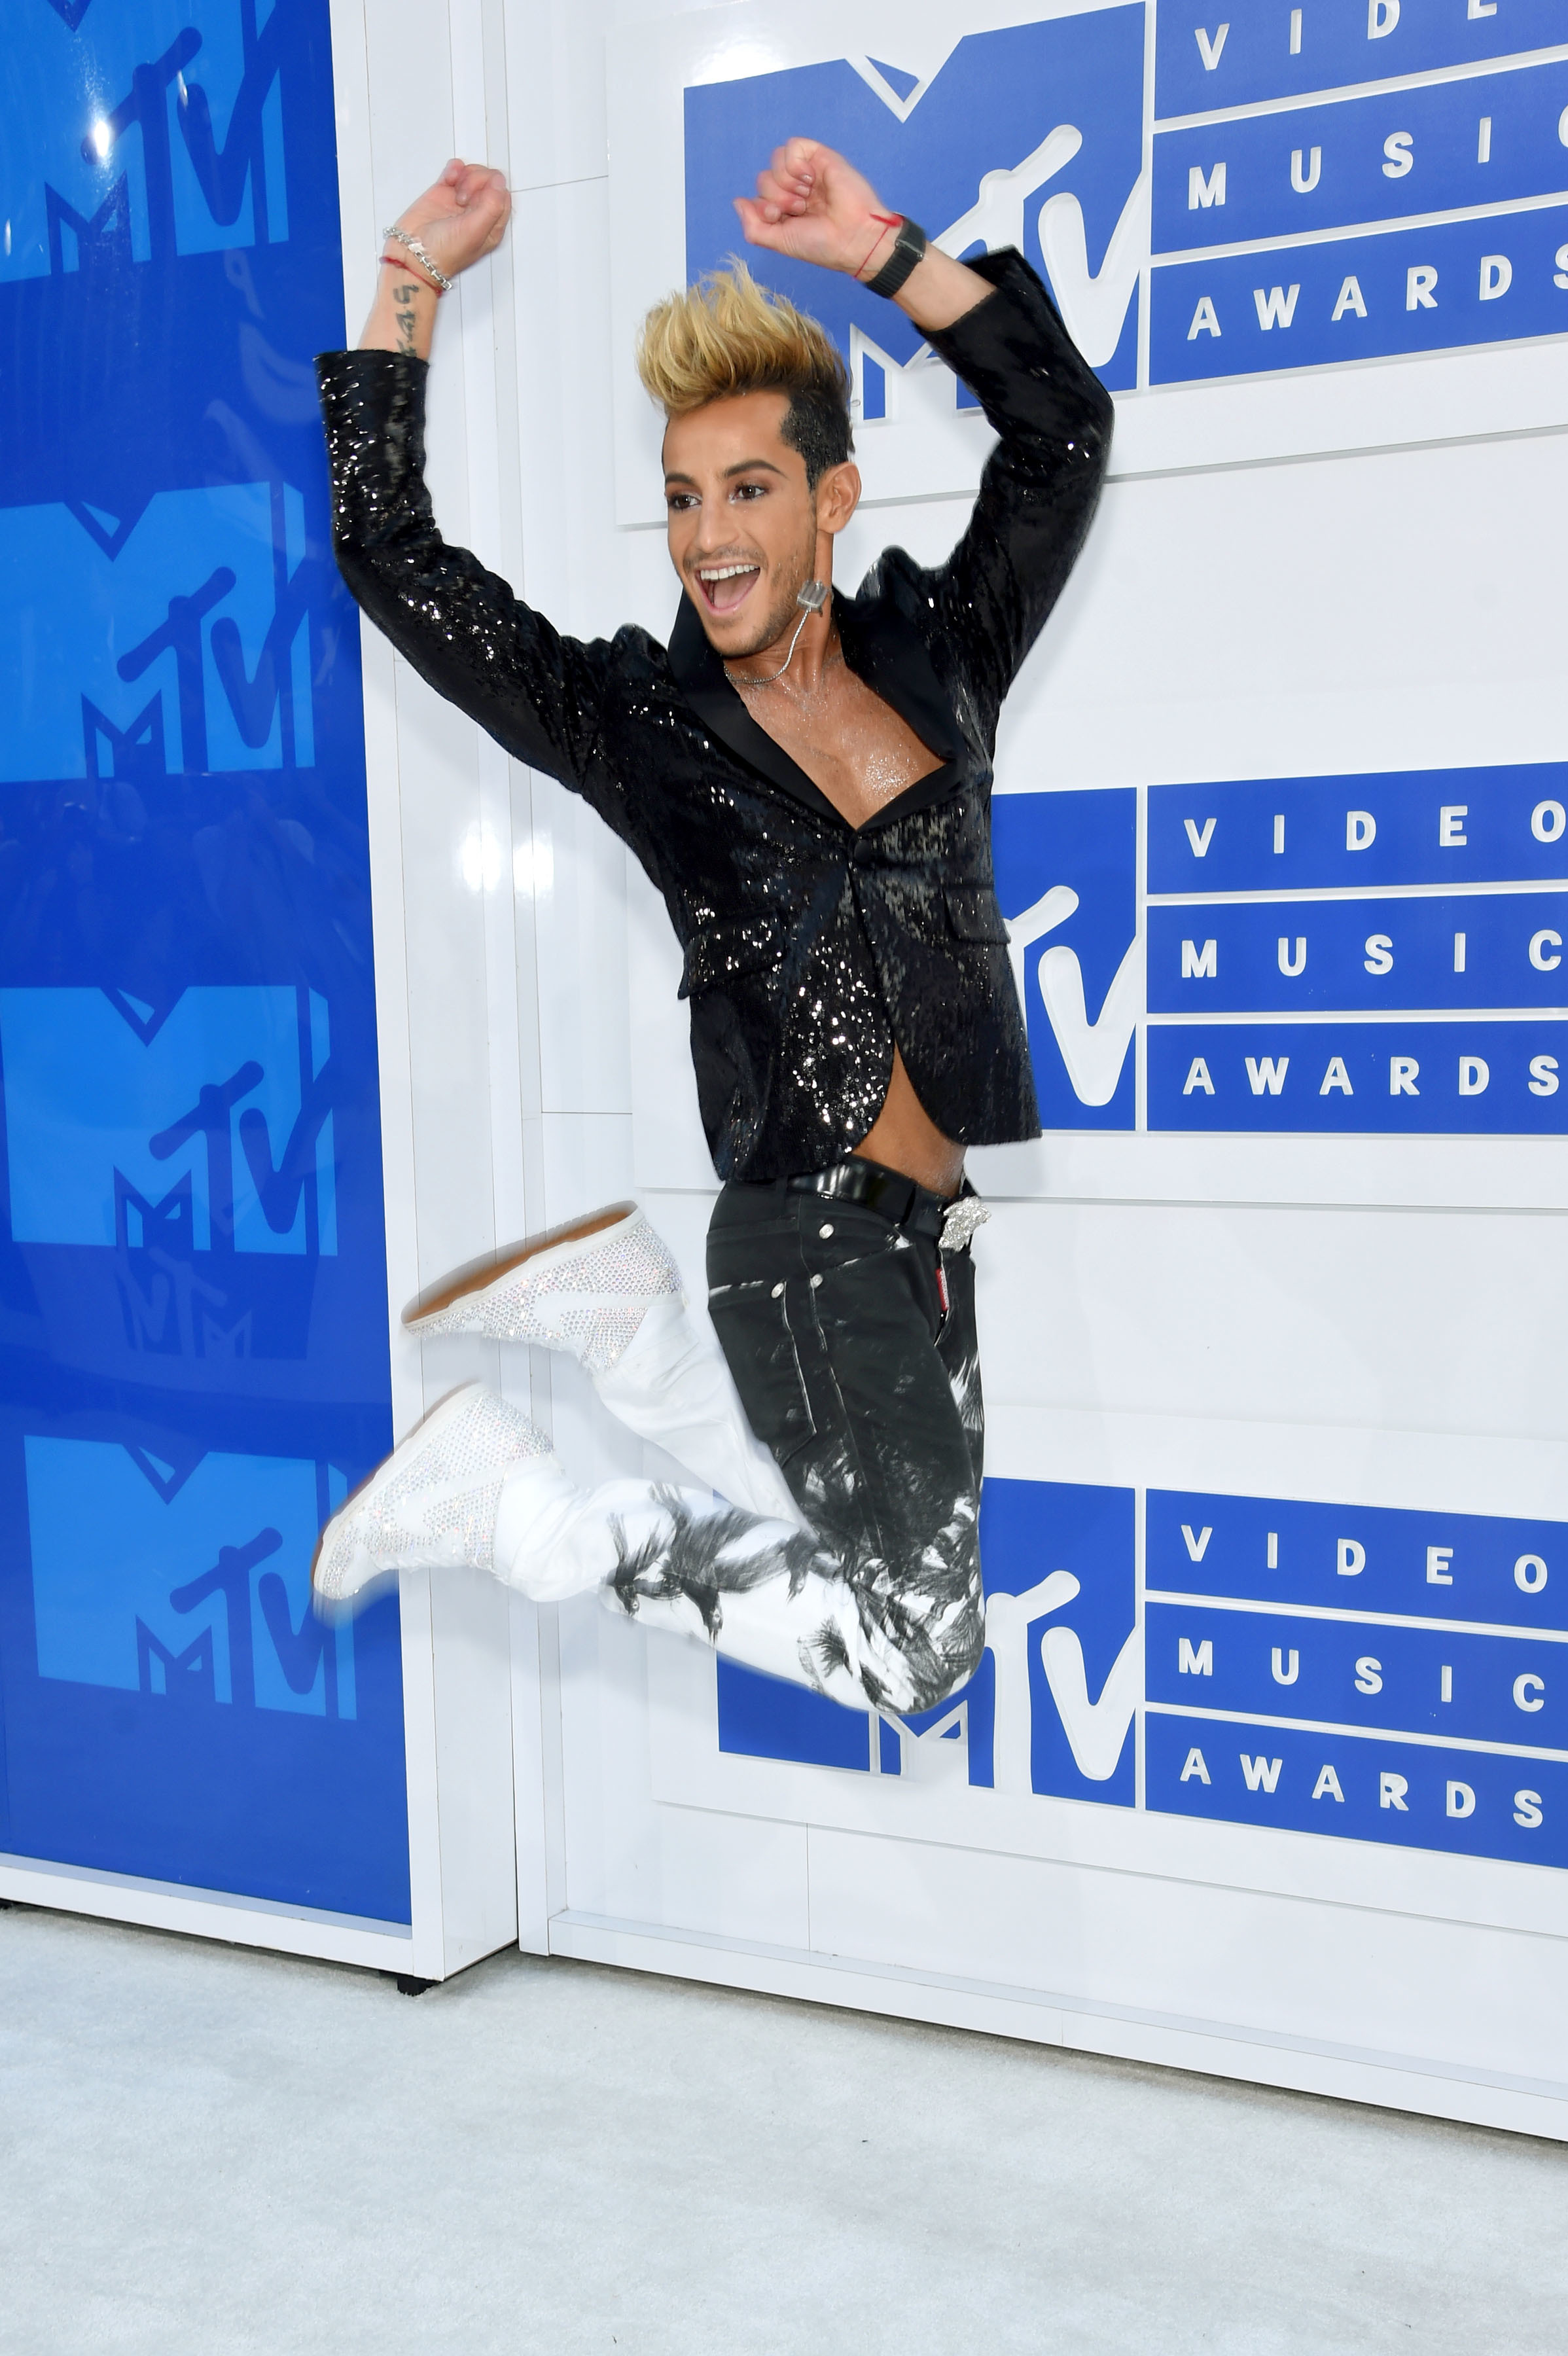 Frankie Grande arrives at the MTV Video Music Awards at Madison Square Garden in New York City on Aug. 28, 2016.